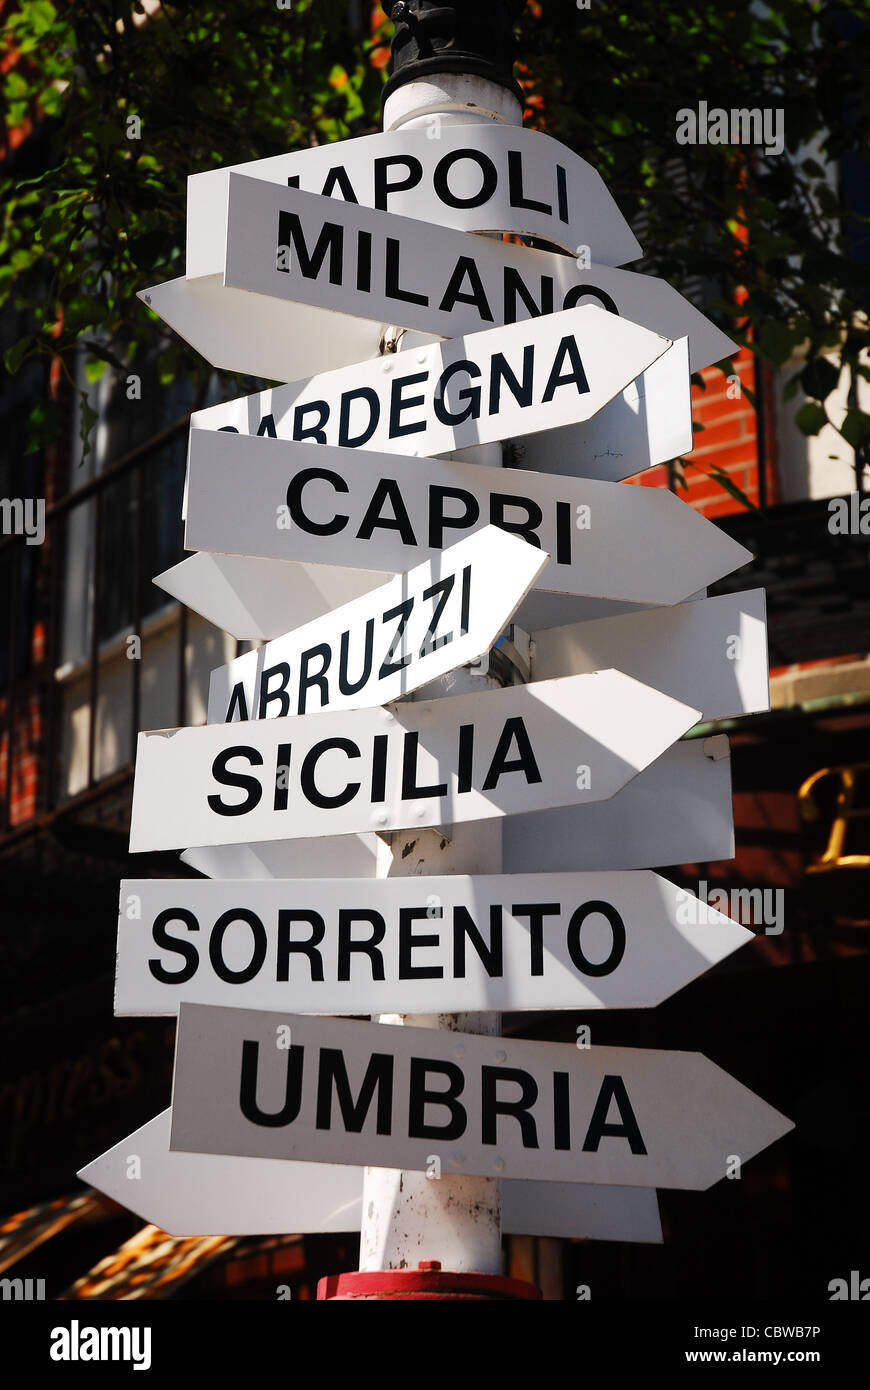 In Boston's Italian North End, sign point the way to the homeland. - Stock Image